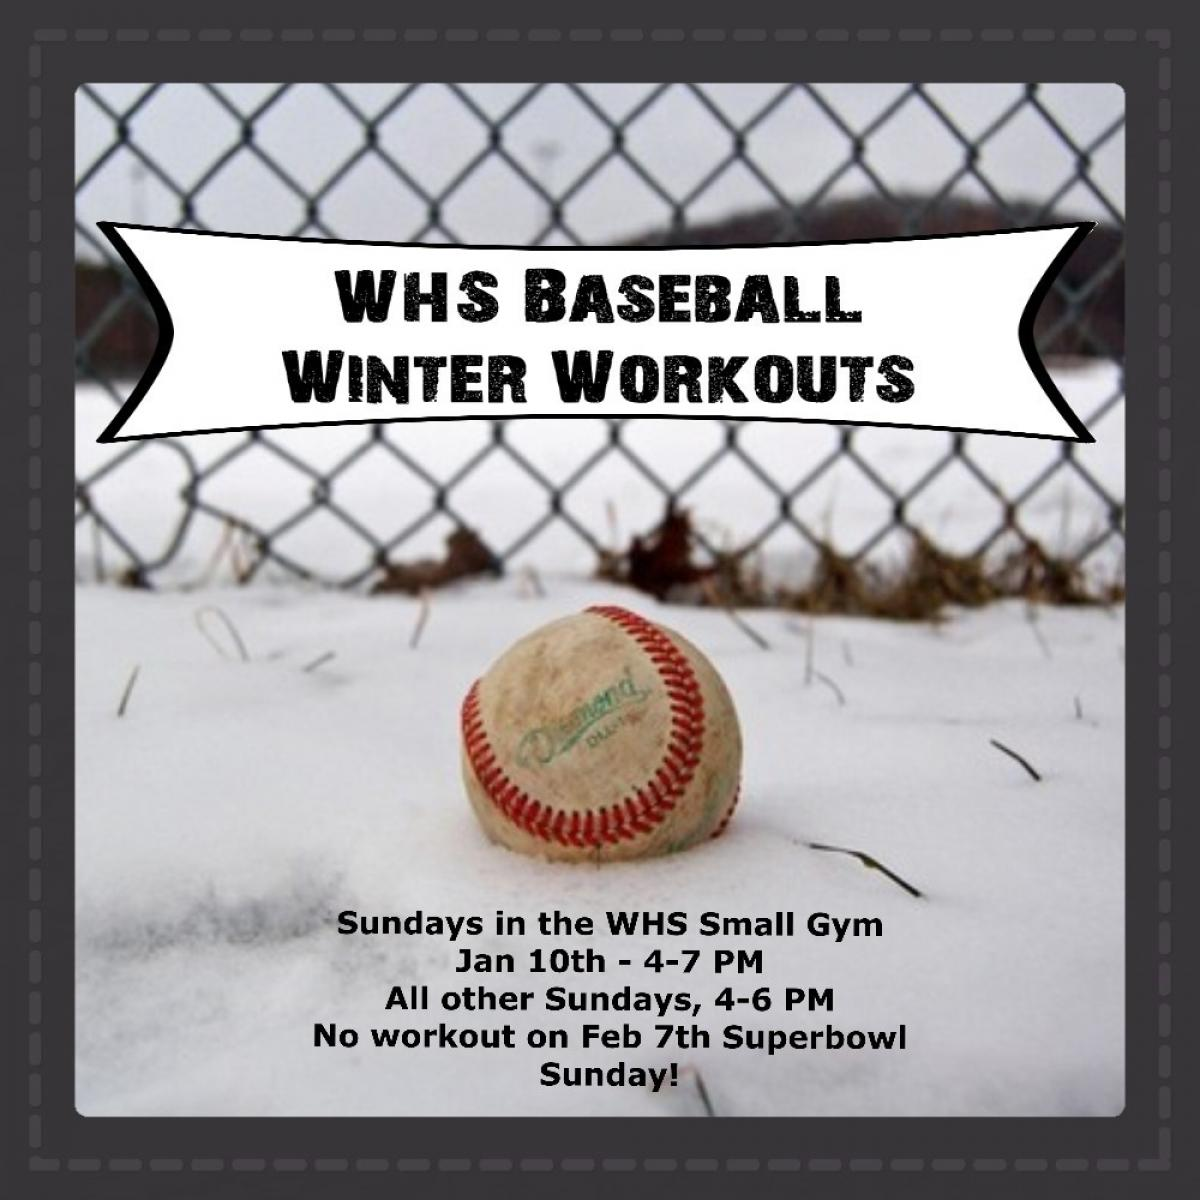 Winter Workouts Begin Jan 10th